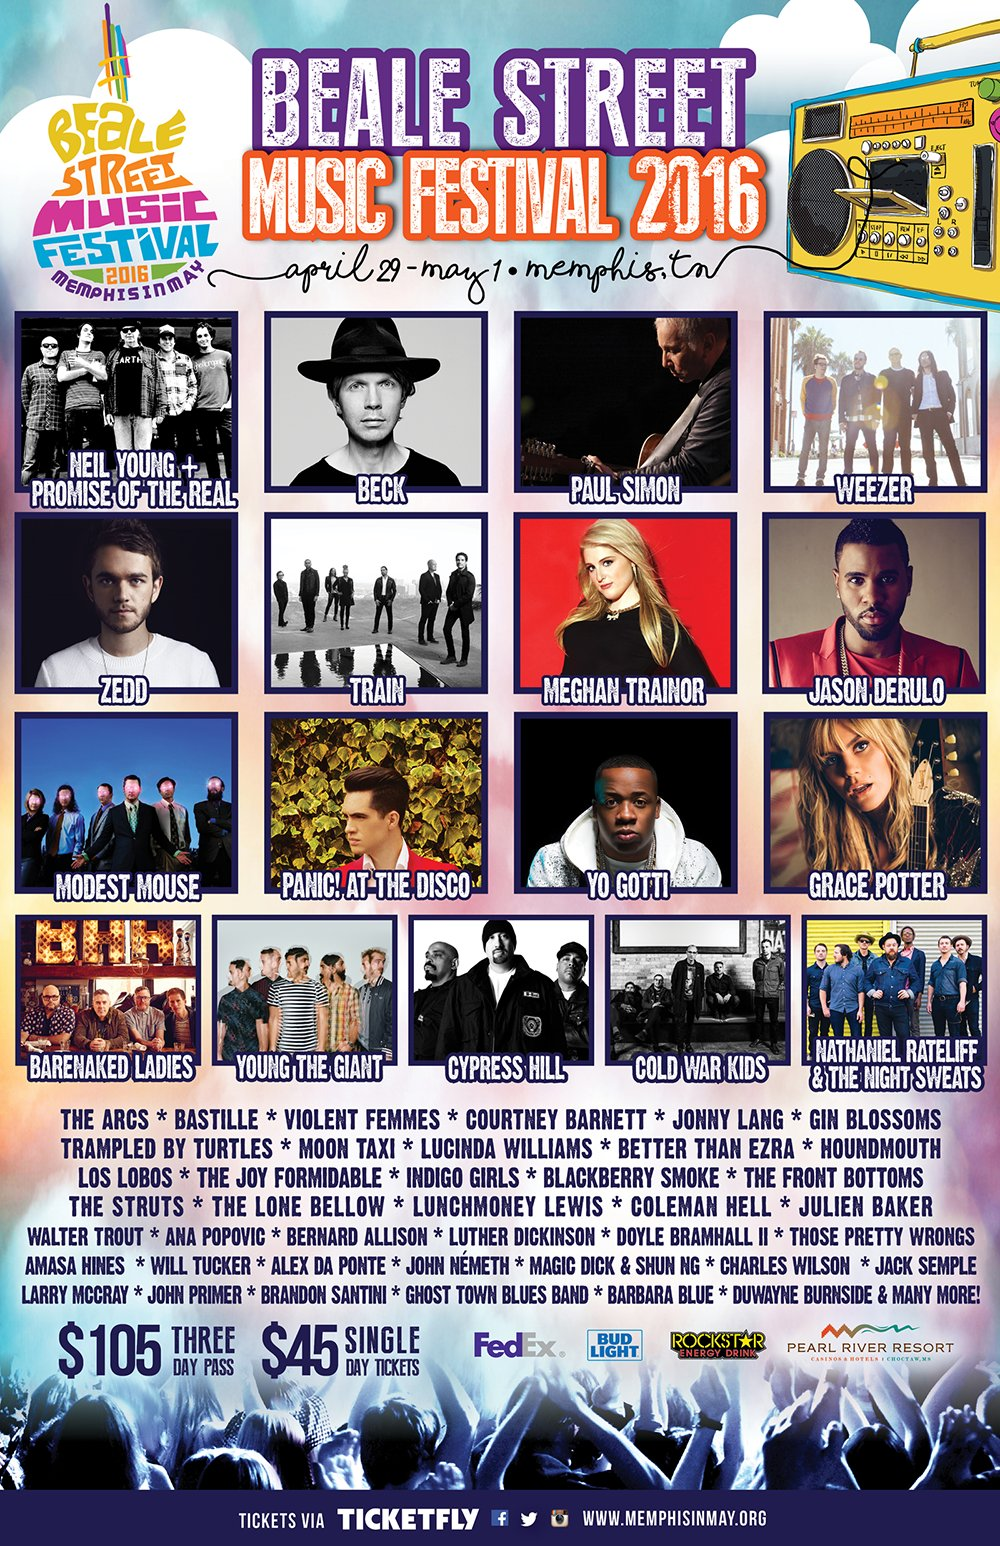 Beale Street Music Festival 2016 lineup. Photo by: Memphis in May / Twitter